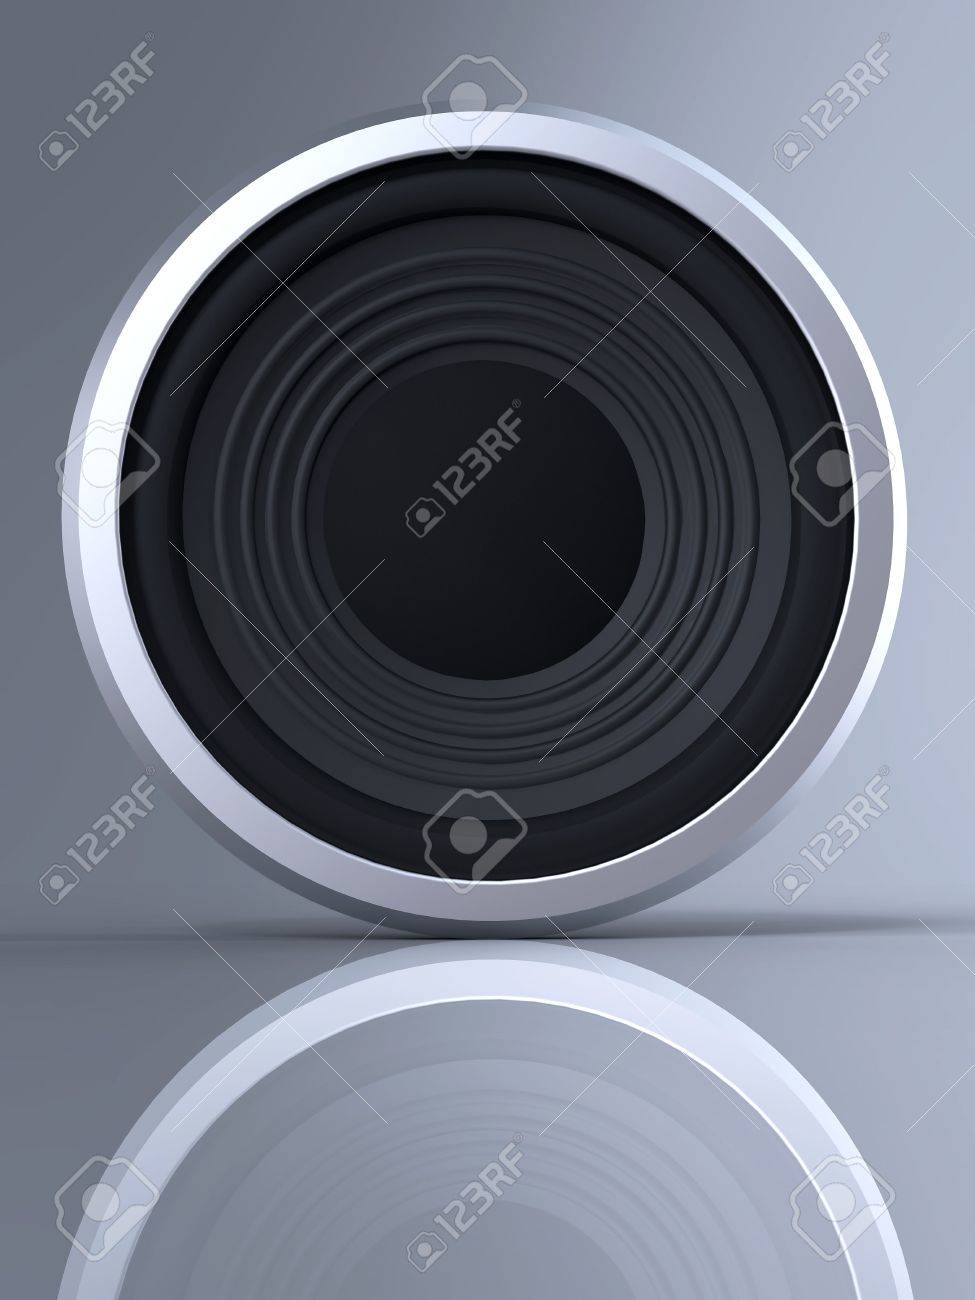 Loudspeaker with reflection and shadow on gray background Stock Photo - 4691838